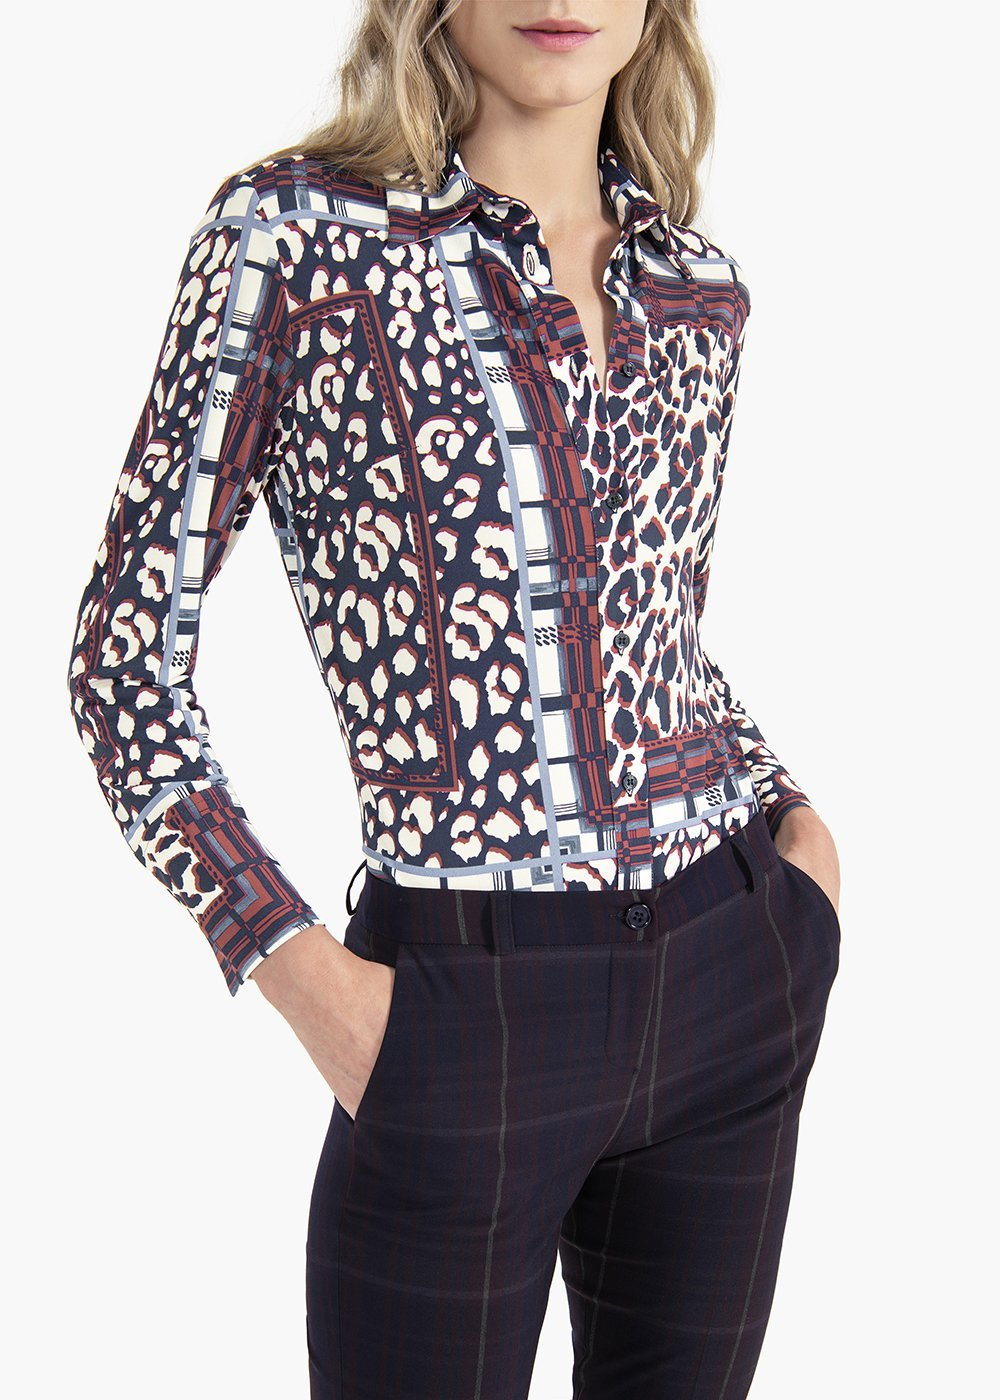 Alessia blouse with spotted print and rectangles - Blue  / Bordeaux Animalier - Woman